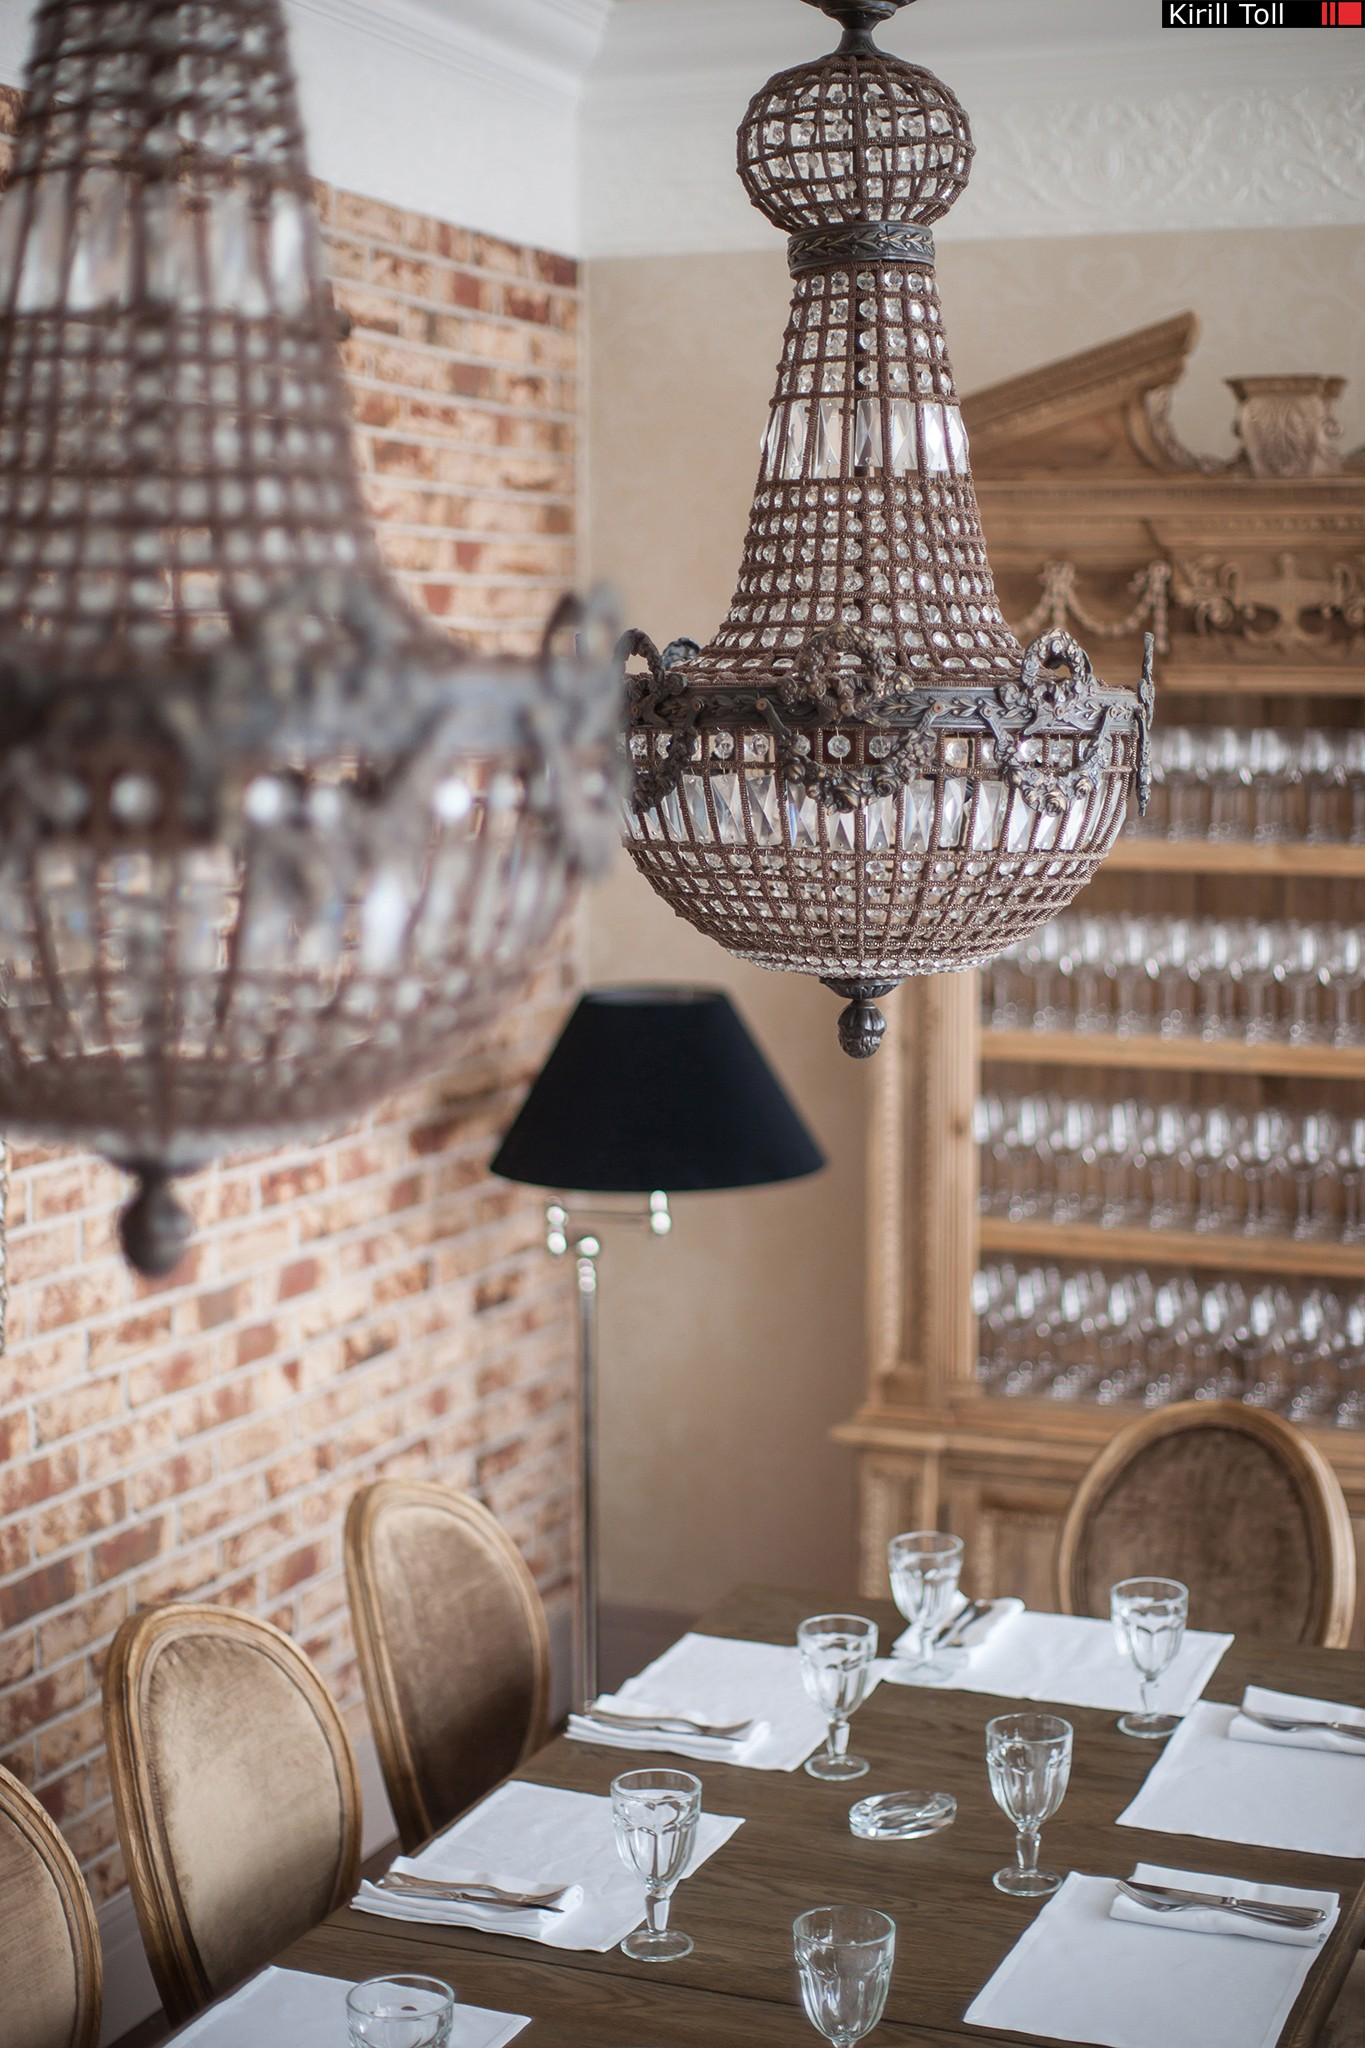 Photos-of-the-interior-of-the-restaurant-for-the-site